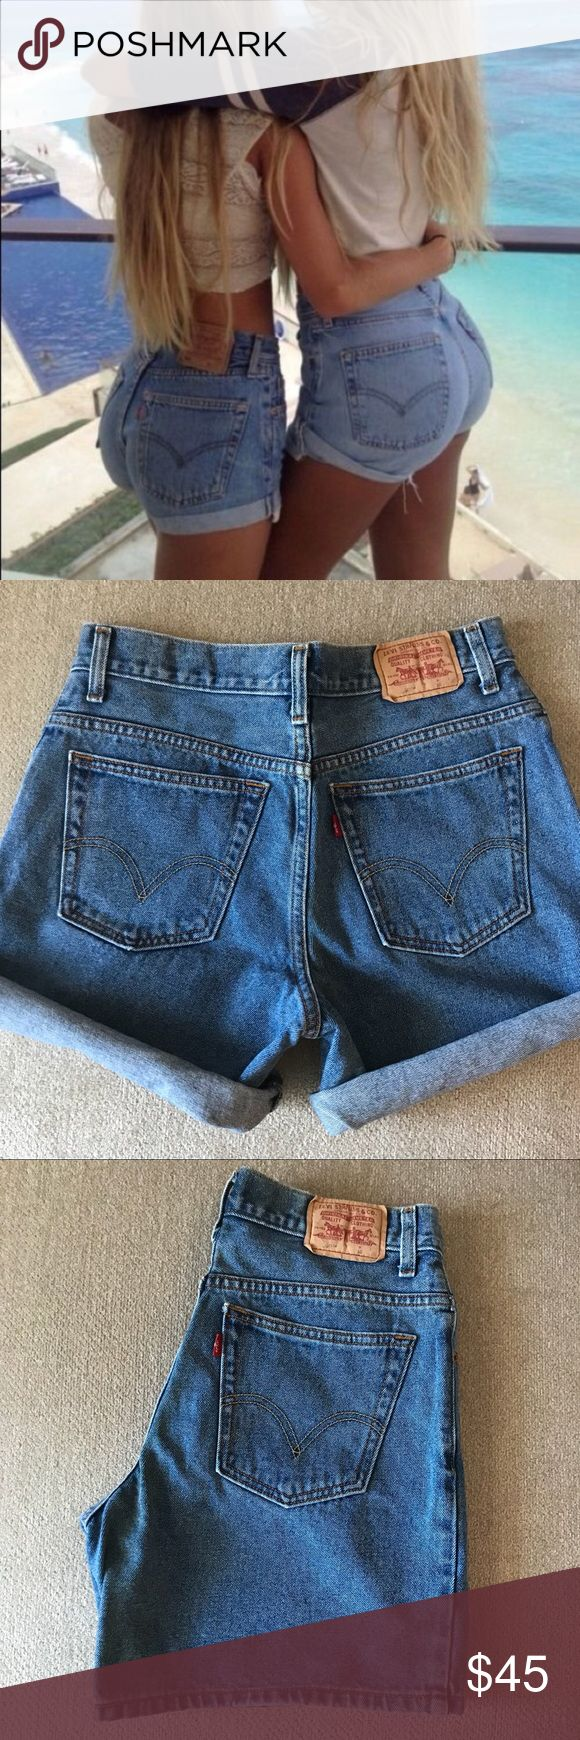 Vintage Levi's 550 High Waisted Denim Shorts 10 Pre-loved, gently worn with lots of life left! These denim shorts are the trend now. They haven't been customized yet so you can customize them to the exact style you want wether it be a folded hem or distressed hem. Light to medium wash denim color. I have 2 pair both in a size 10 selling separately. Levi's Shorts Jean Shorts